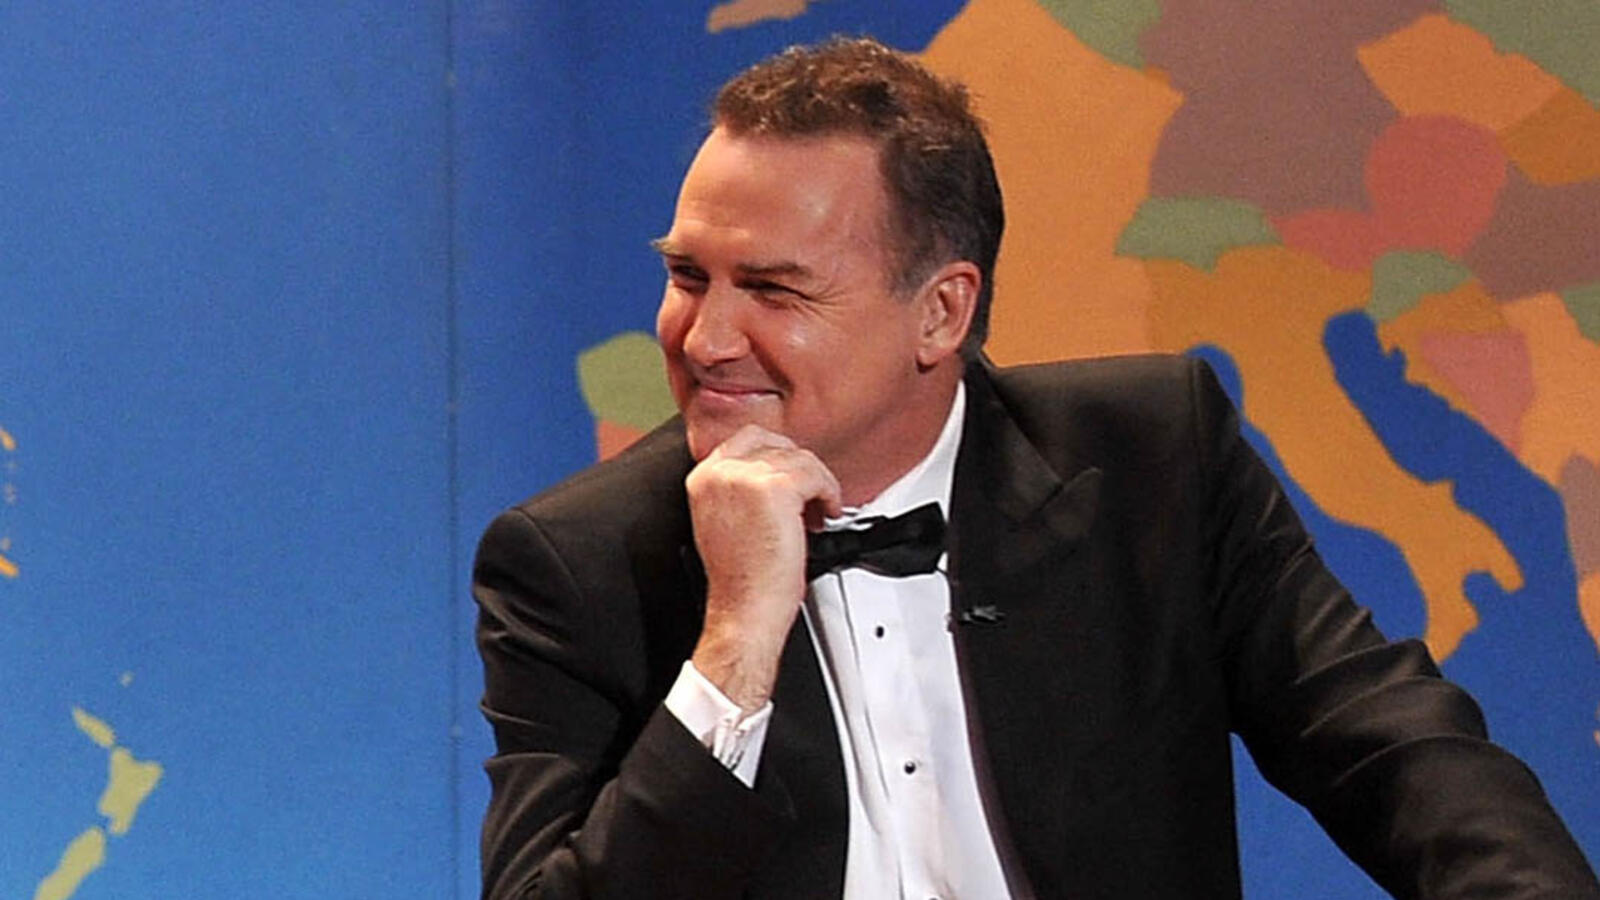 The World Reacts To Passing Of Comedy Great Norm Macdonald